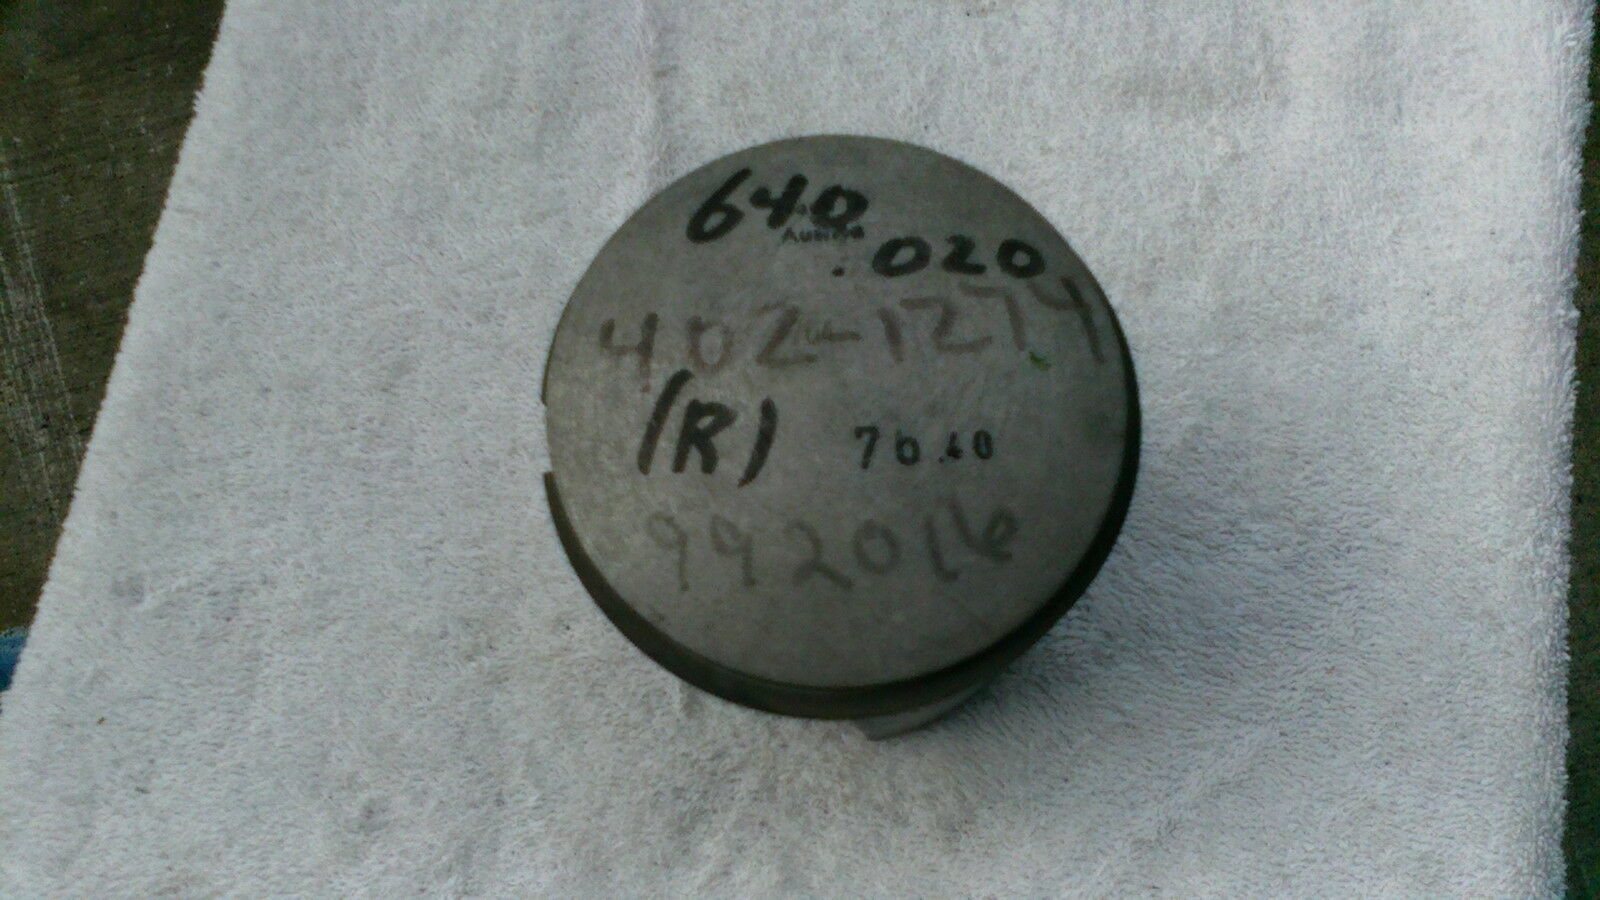 VINTAGE NOS OEM SKIDOO redAX 640  .020 OVER PISTON RINGS NORDIC SNOWMOBILE  take up to 70% off